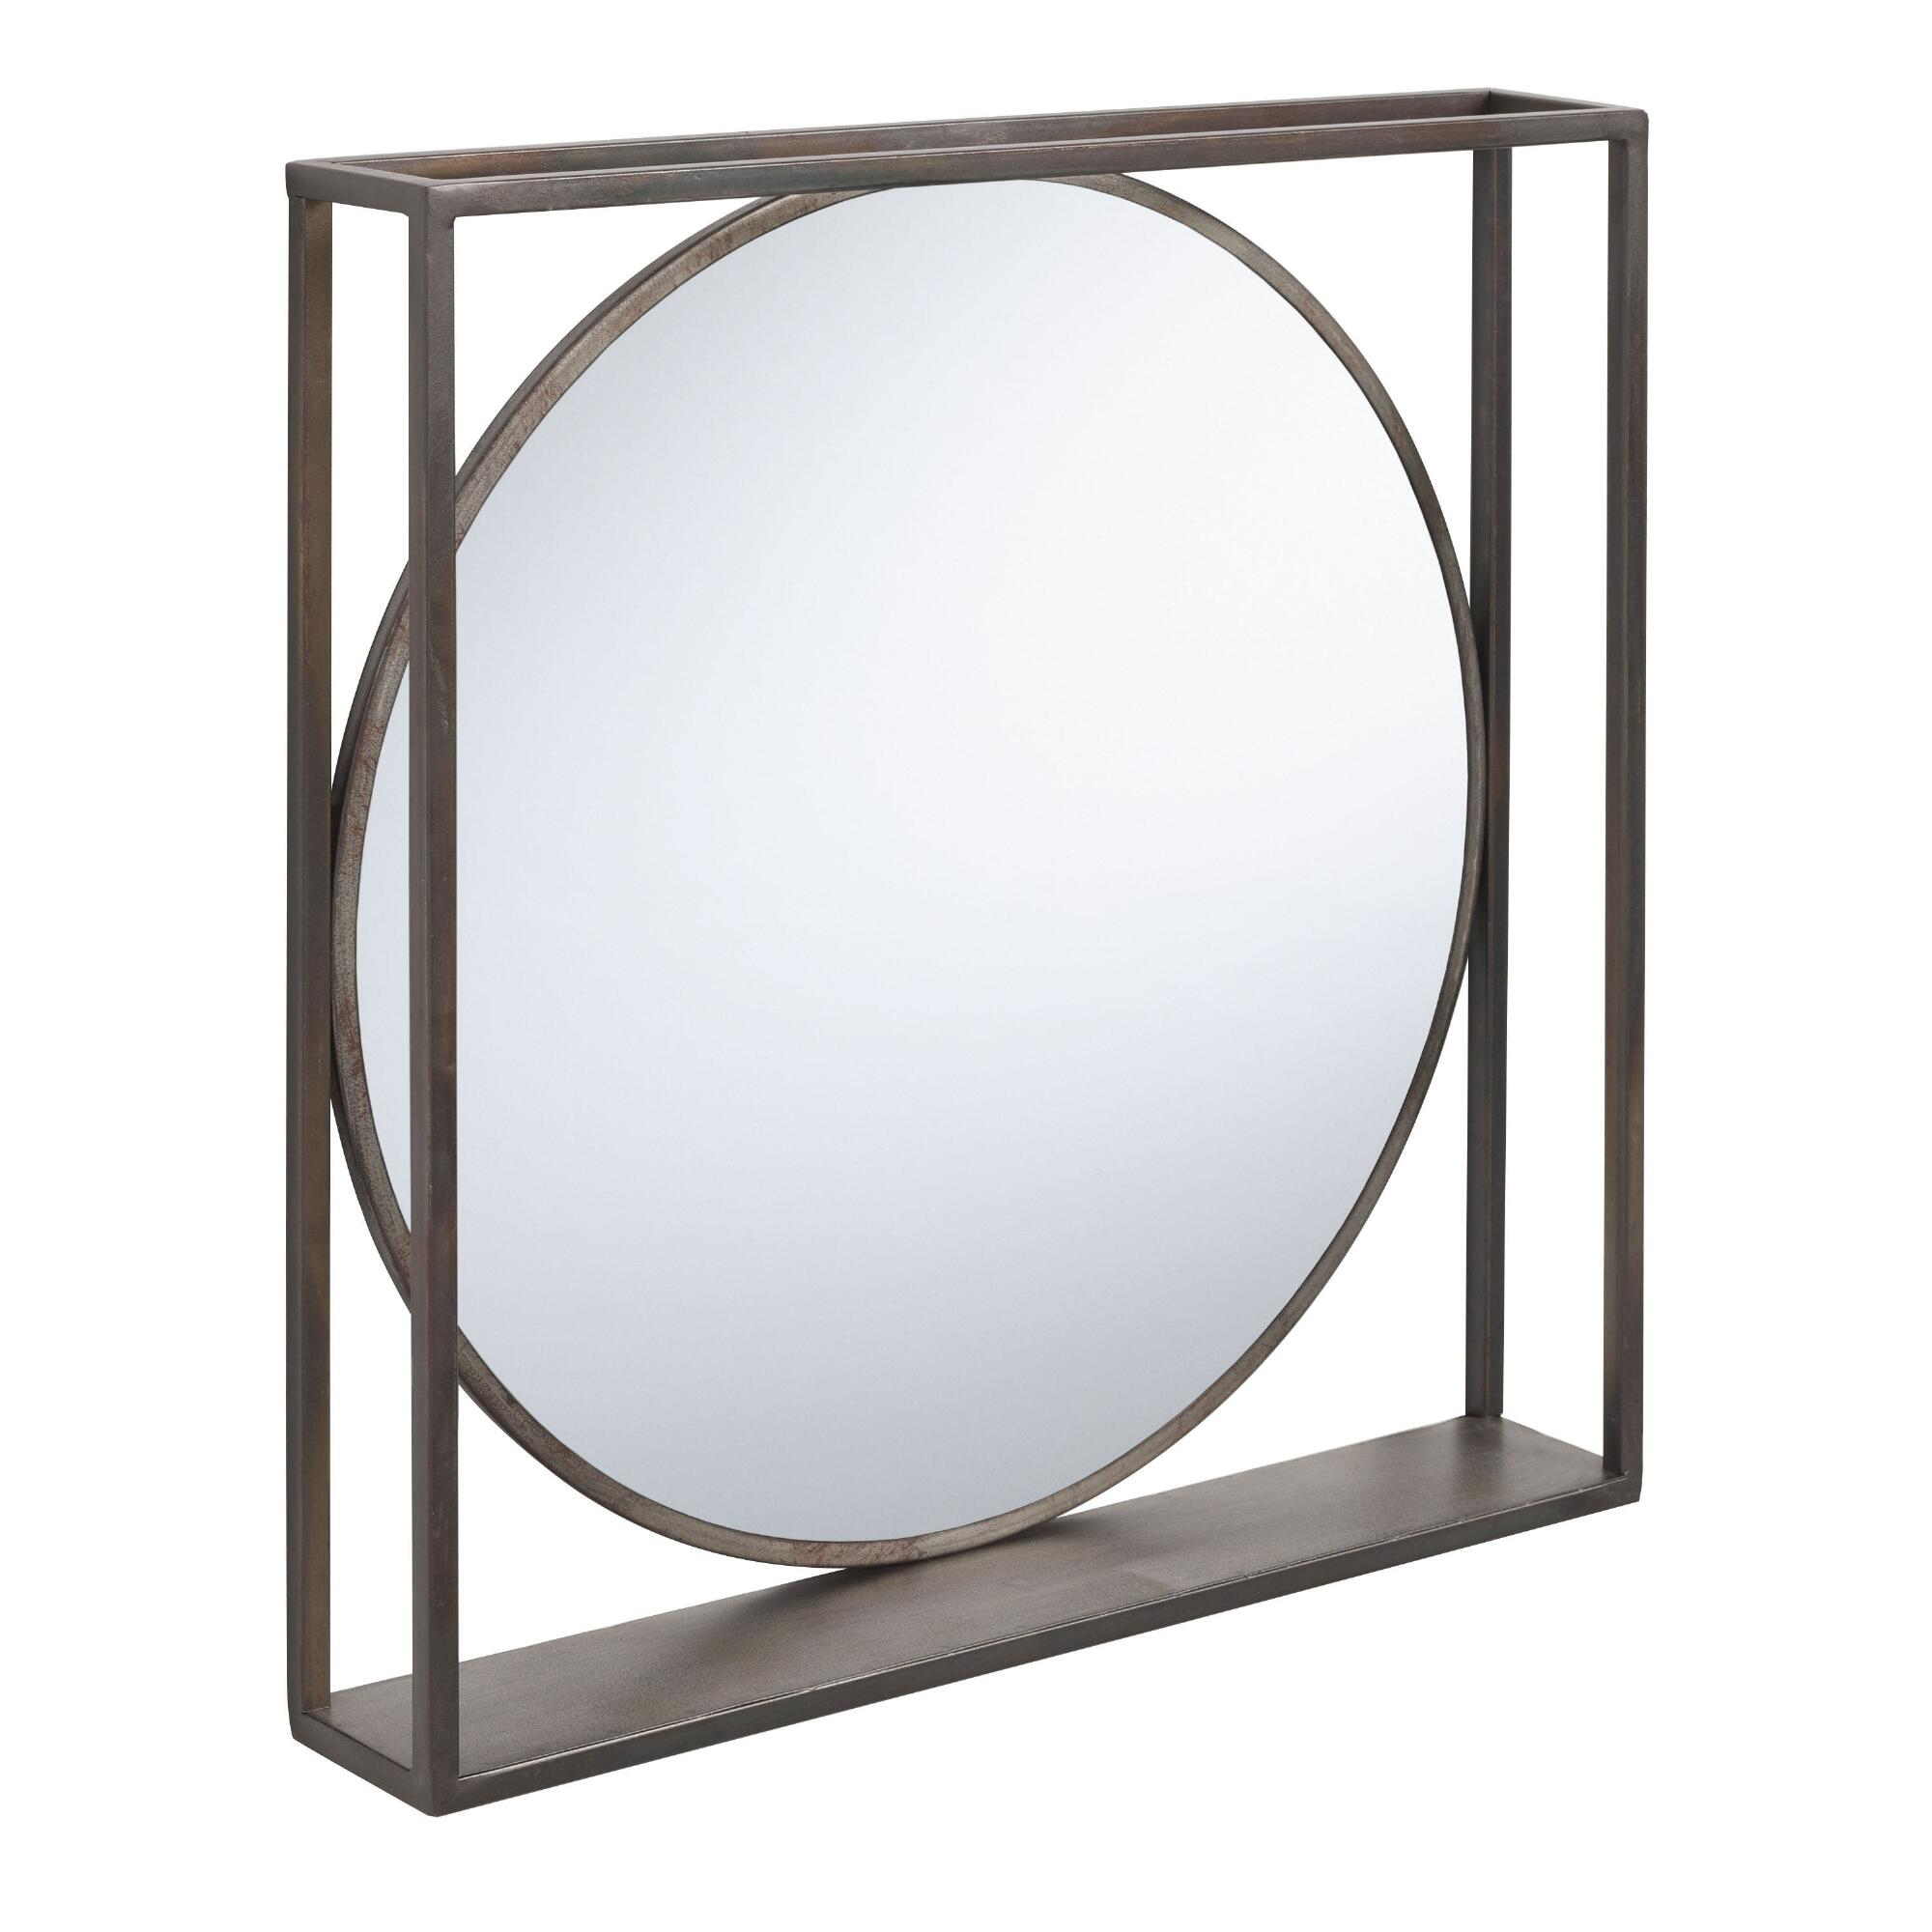 Distressed Black Framed Mirror With Shelfworld Market within Peetz Modern Rustic Accent Mirrors (Image 9 of 30)